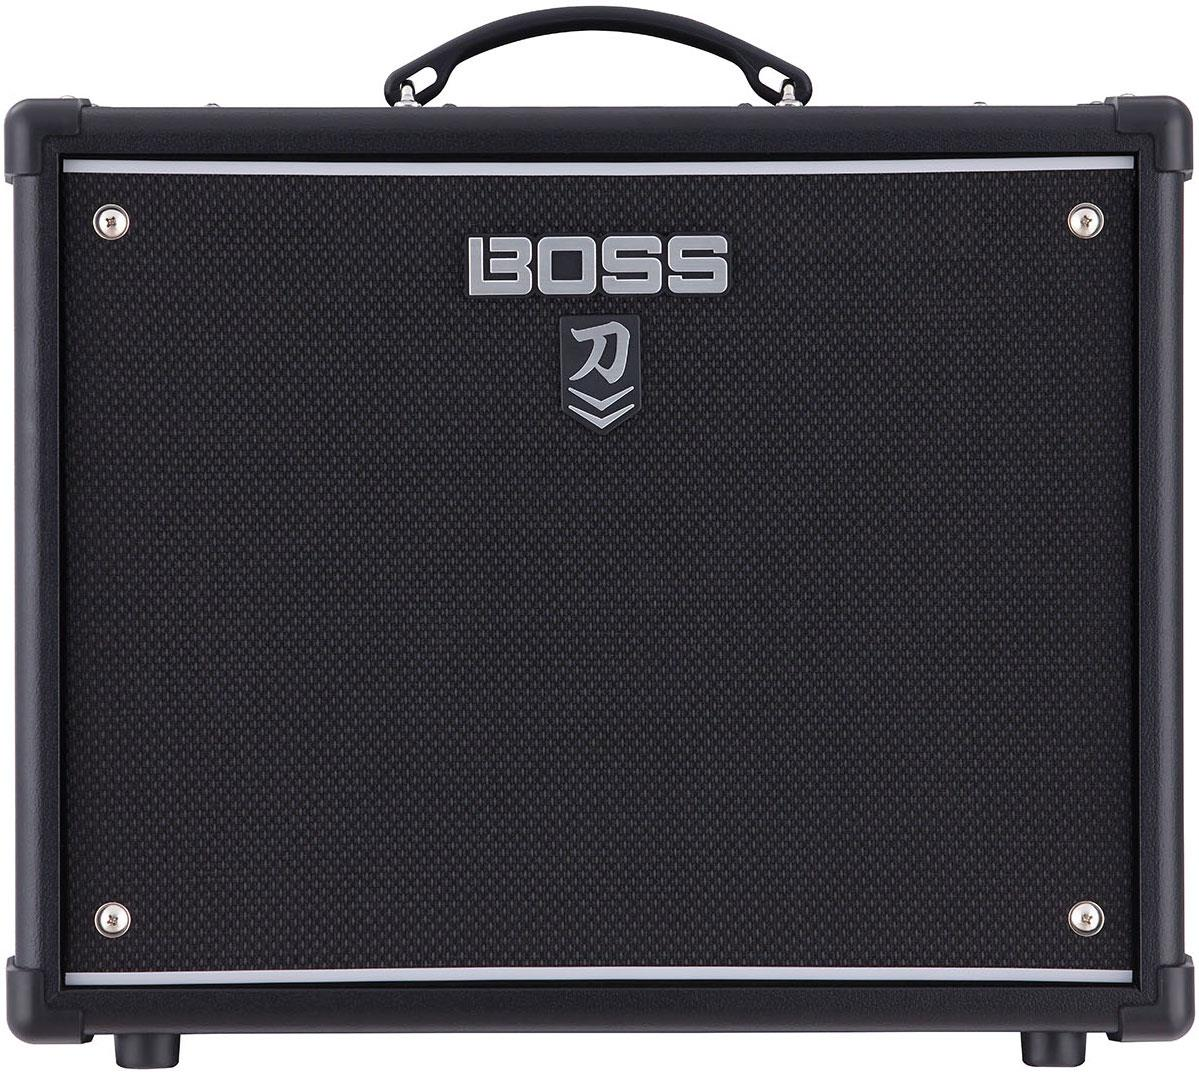 Boss KATANA-50 MkII Guitar Amplifier | Keymusic